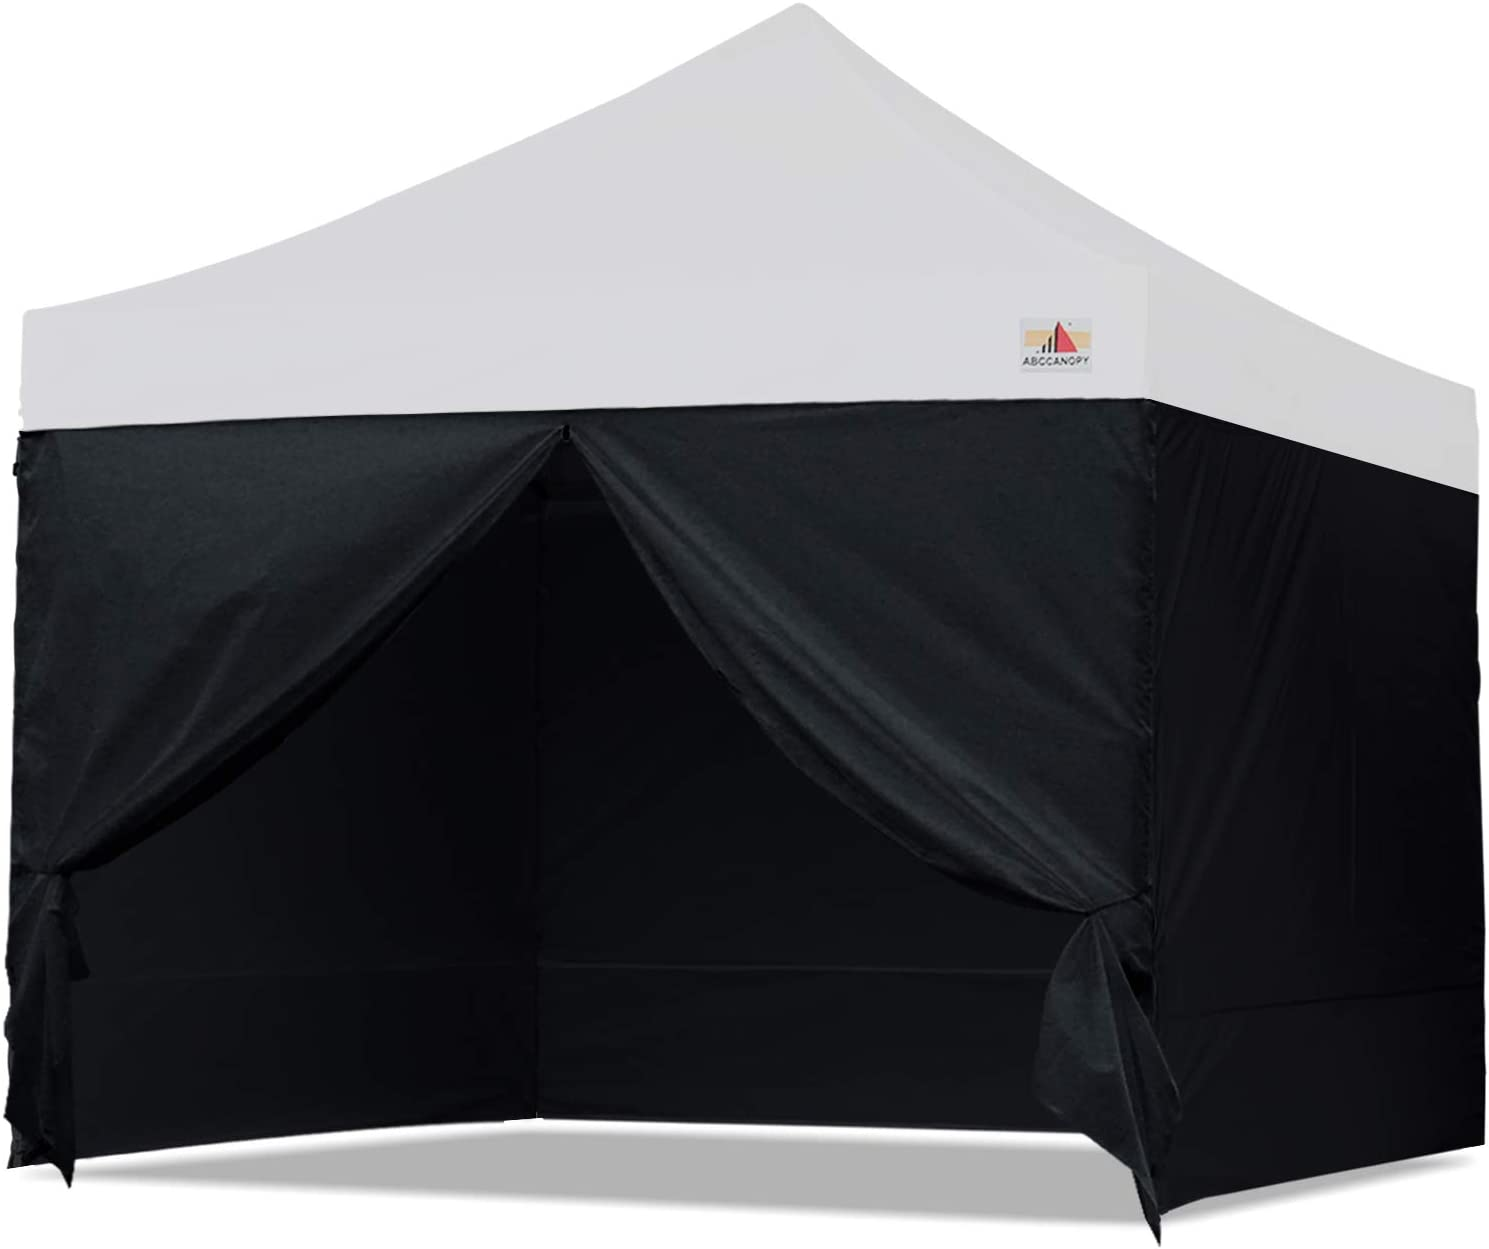 ABCCANOPY Sidewall Kit Canopy Tent 8x8 Side Ranking TOP3 4 ONLY Ranking TOP9 Walls